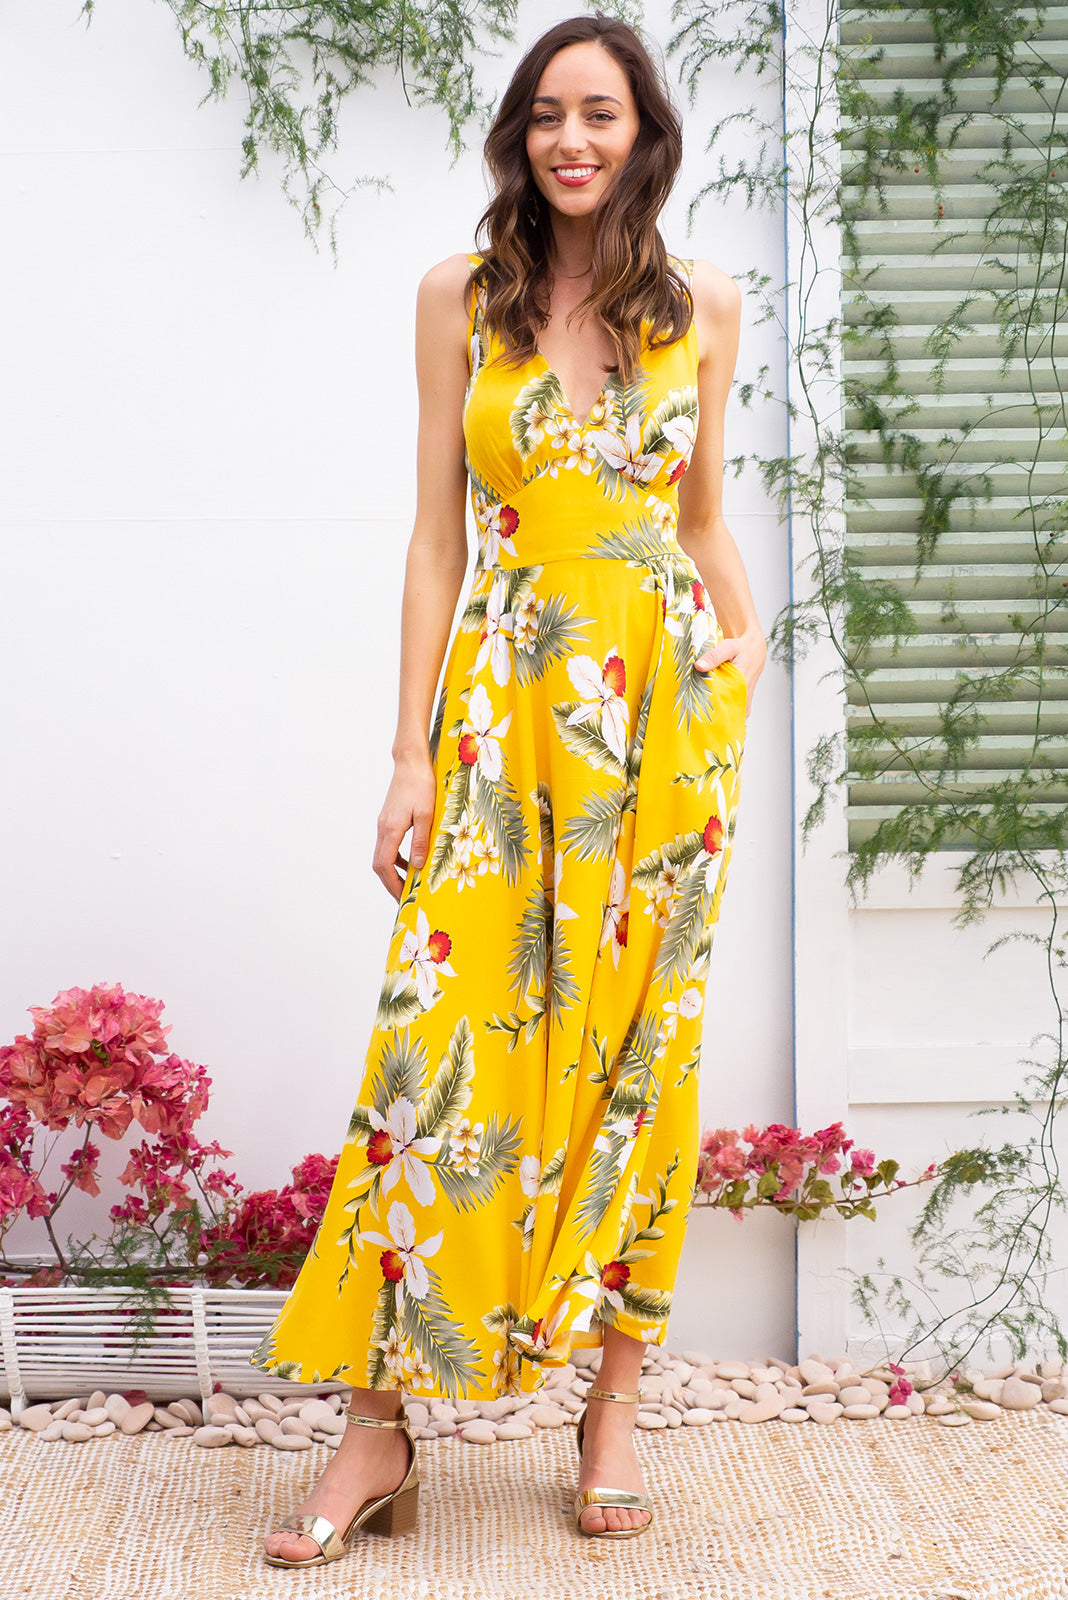 Lola Aloha Yellow Maxi dress features a fitted basque waist with an elasticated back with a slender strap and deep v neck the fabric is a soft woven rayon in a bright sunshine yellow tropical floral print